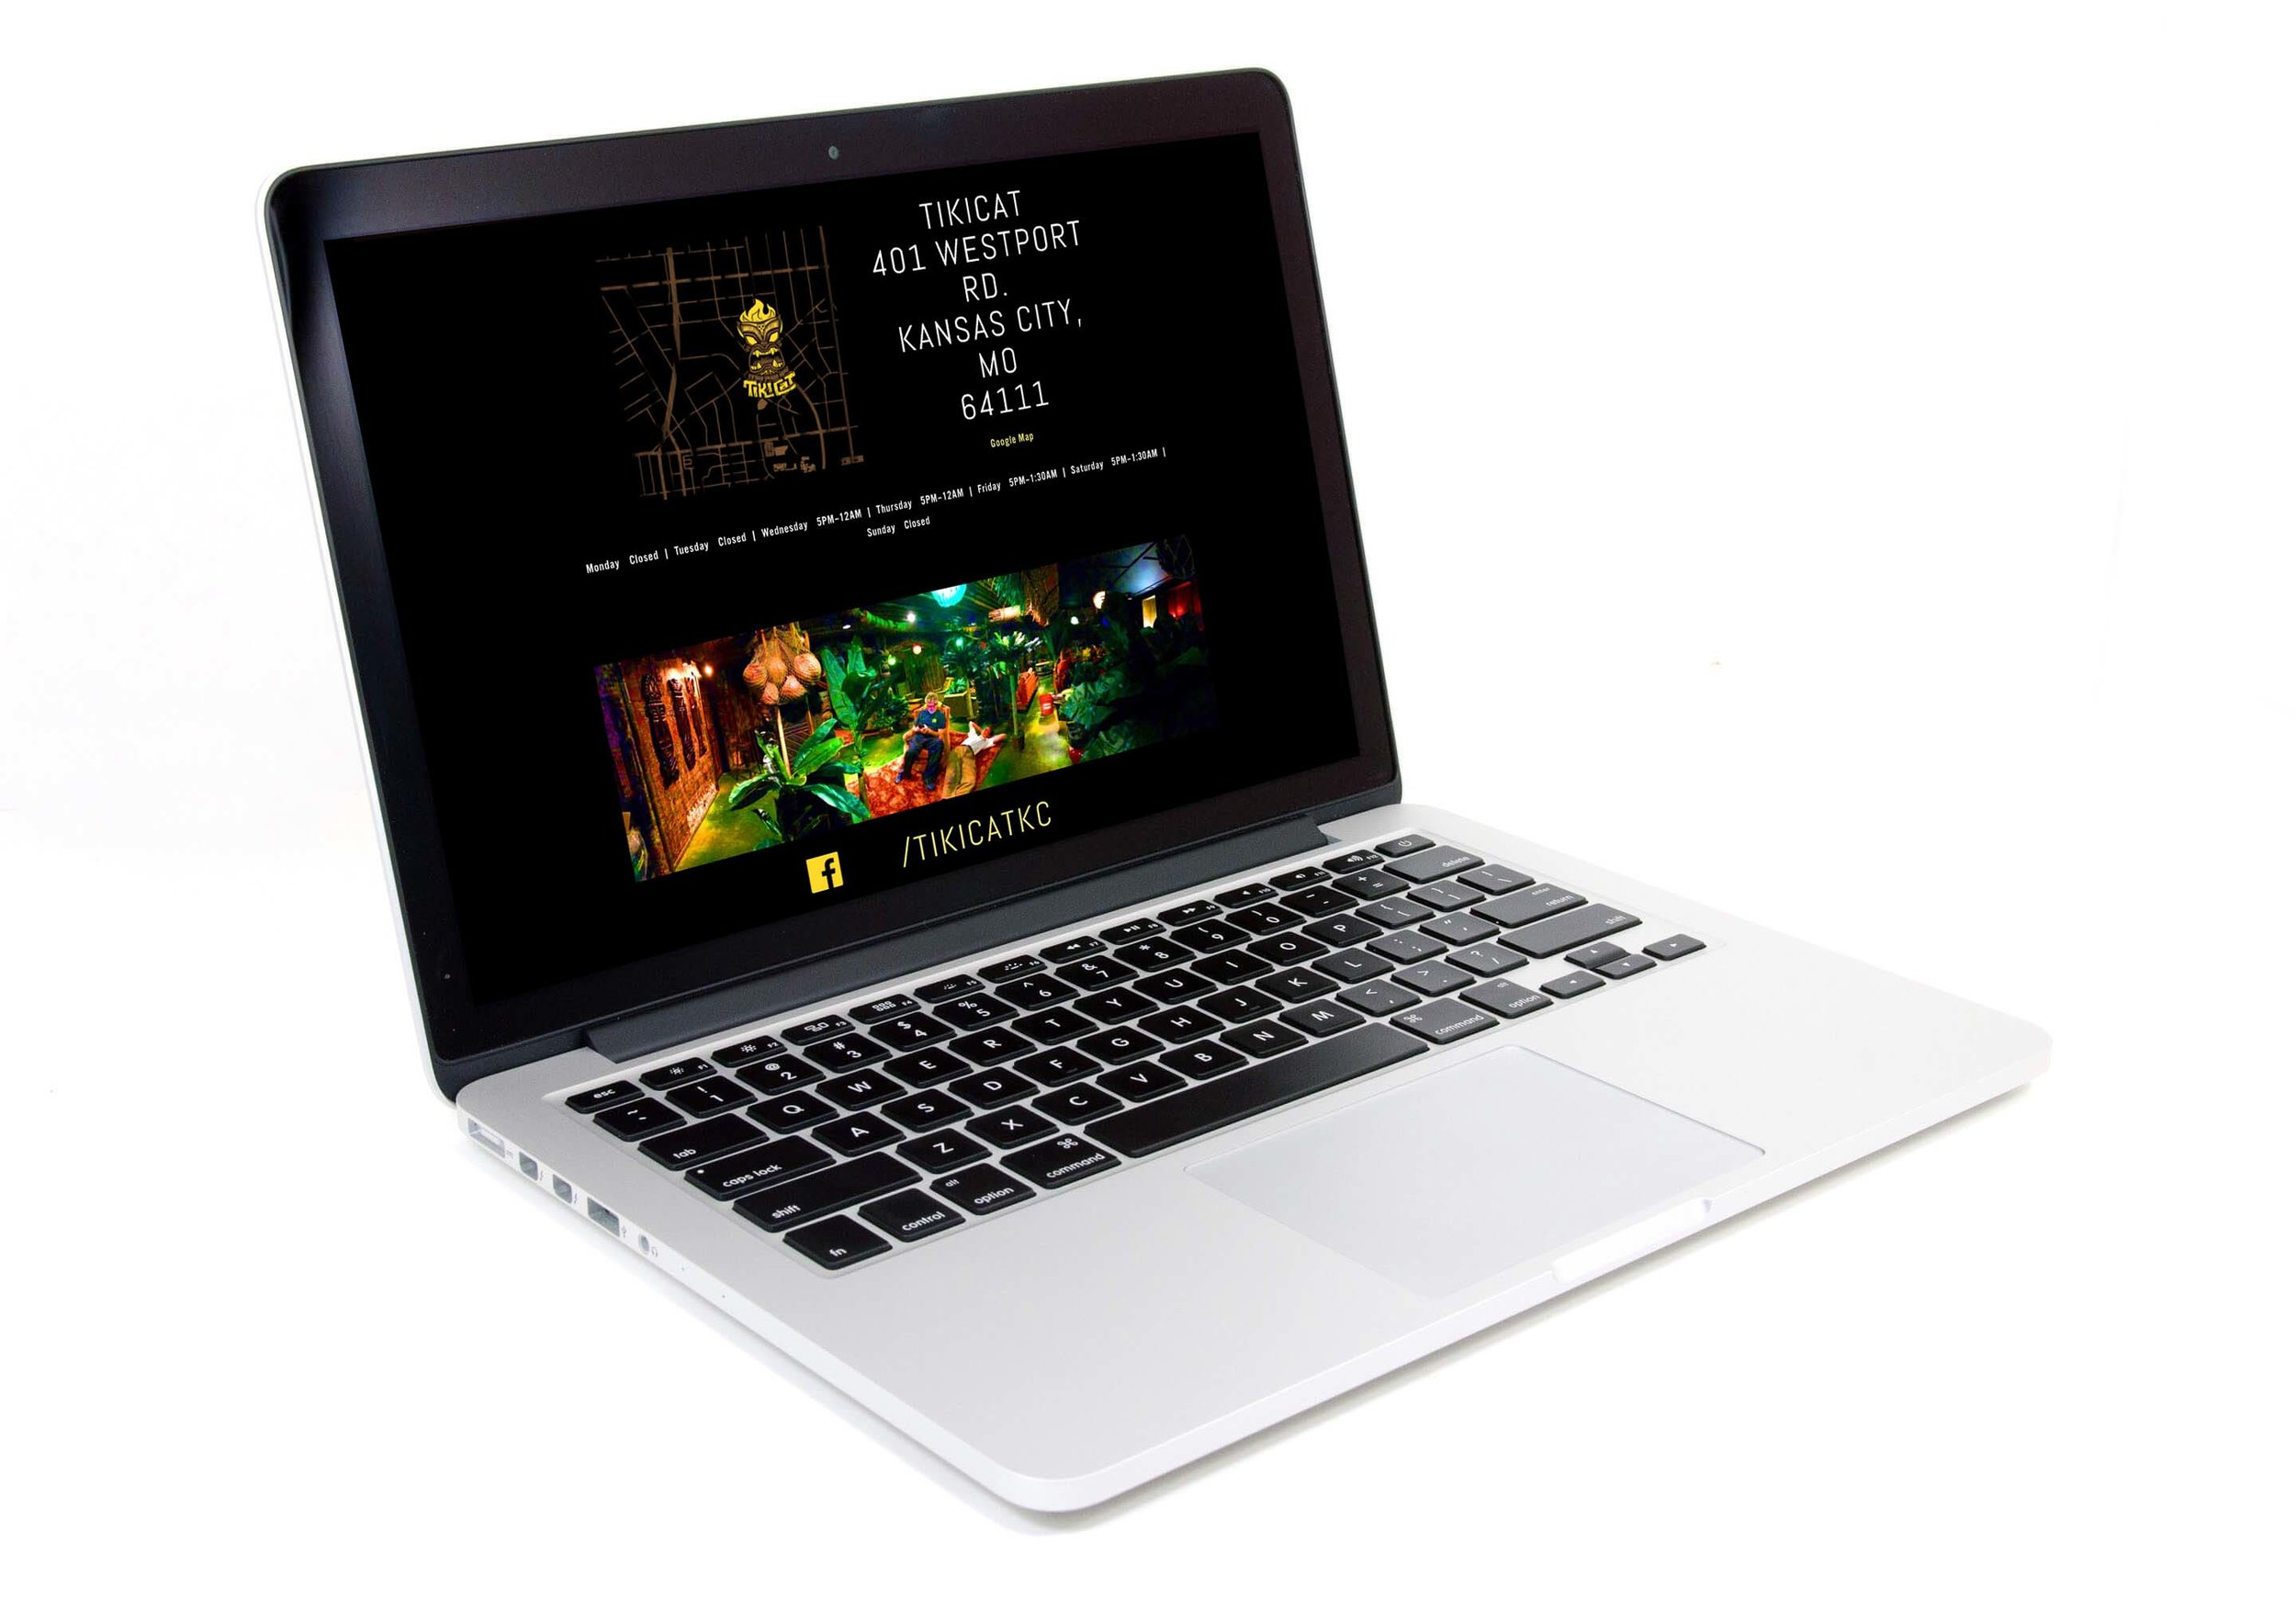 Website MacBook Pro 002e copy.jpg